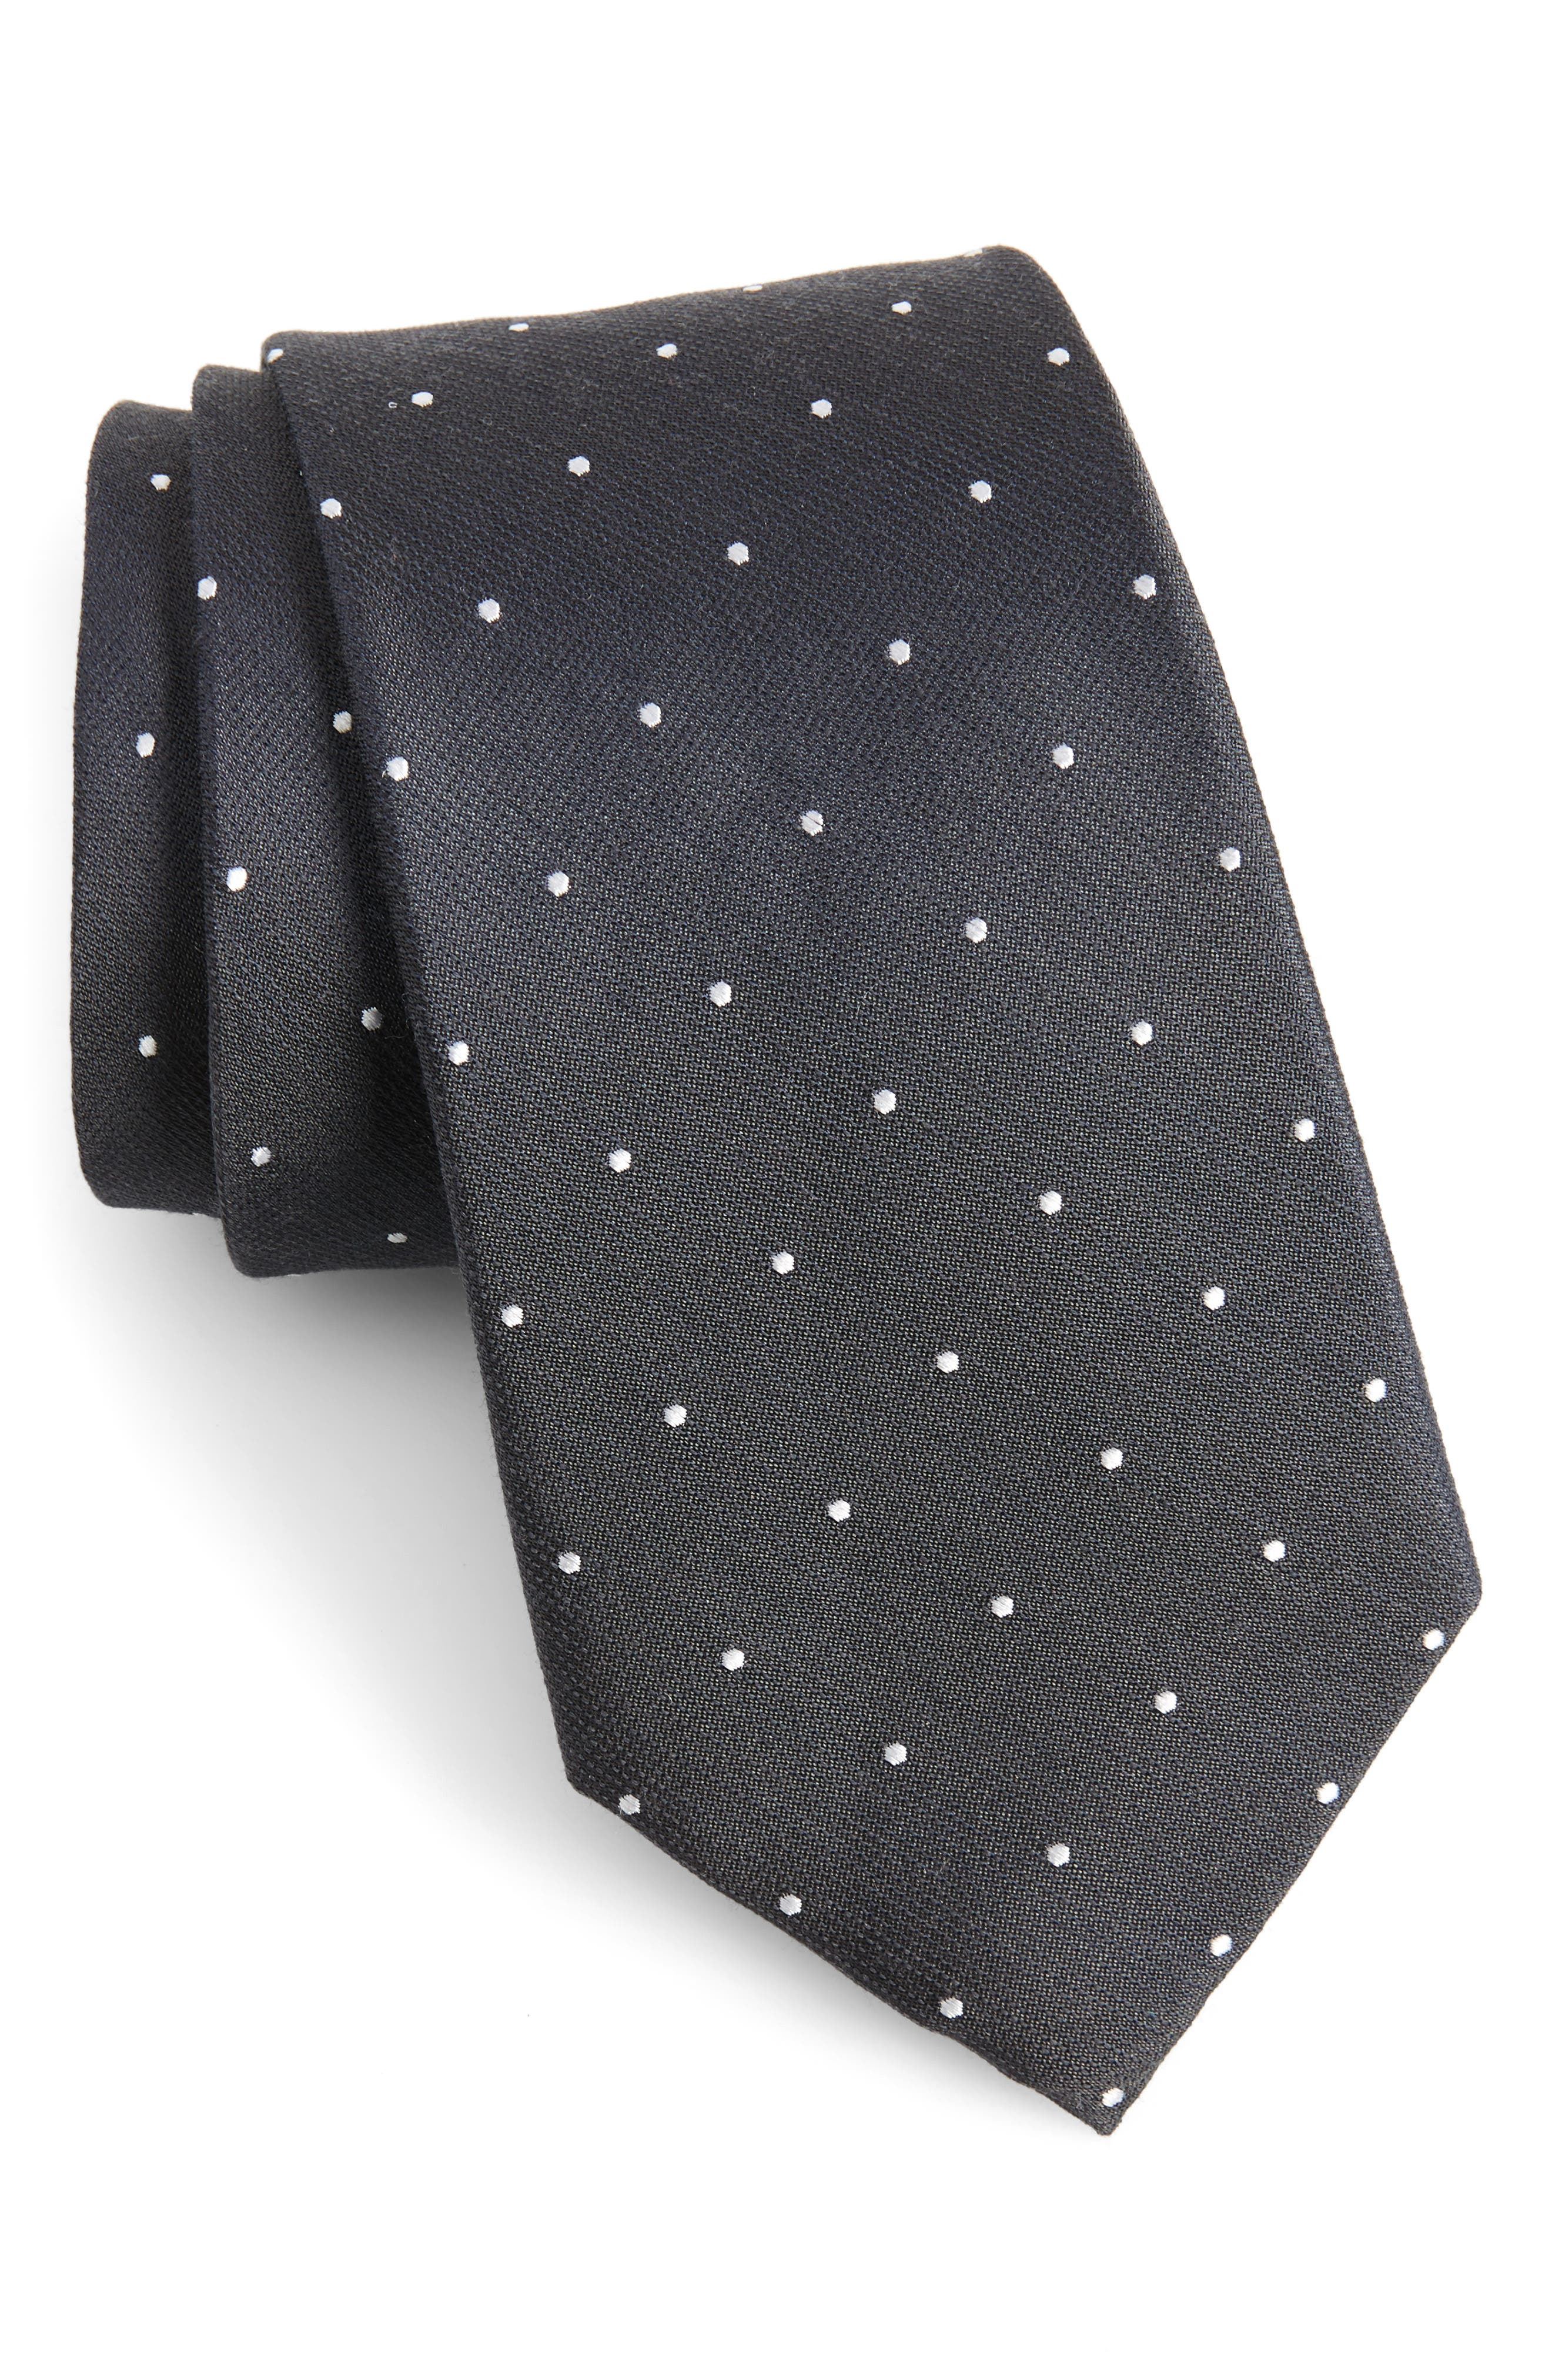 Alternate Image 1 Selected - The Tie Bar Dotted Report Silk & Wool Tie (X-Long)